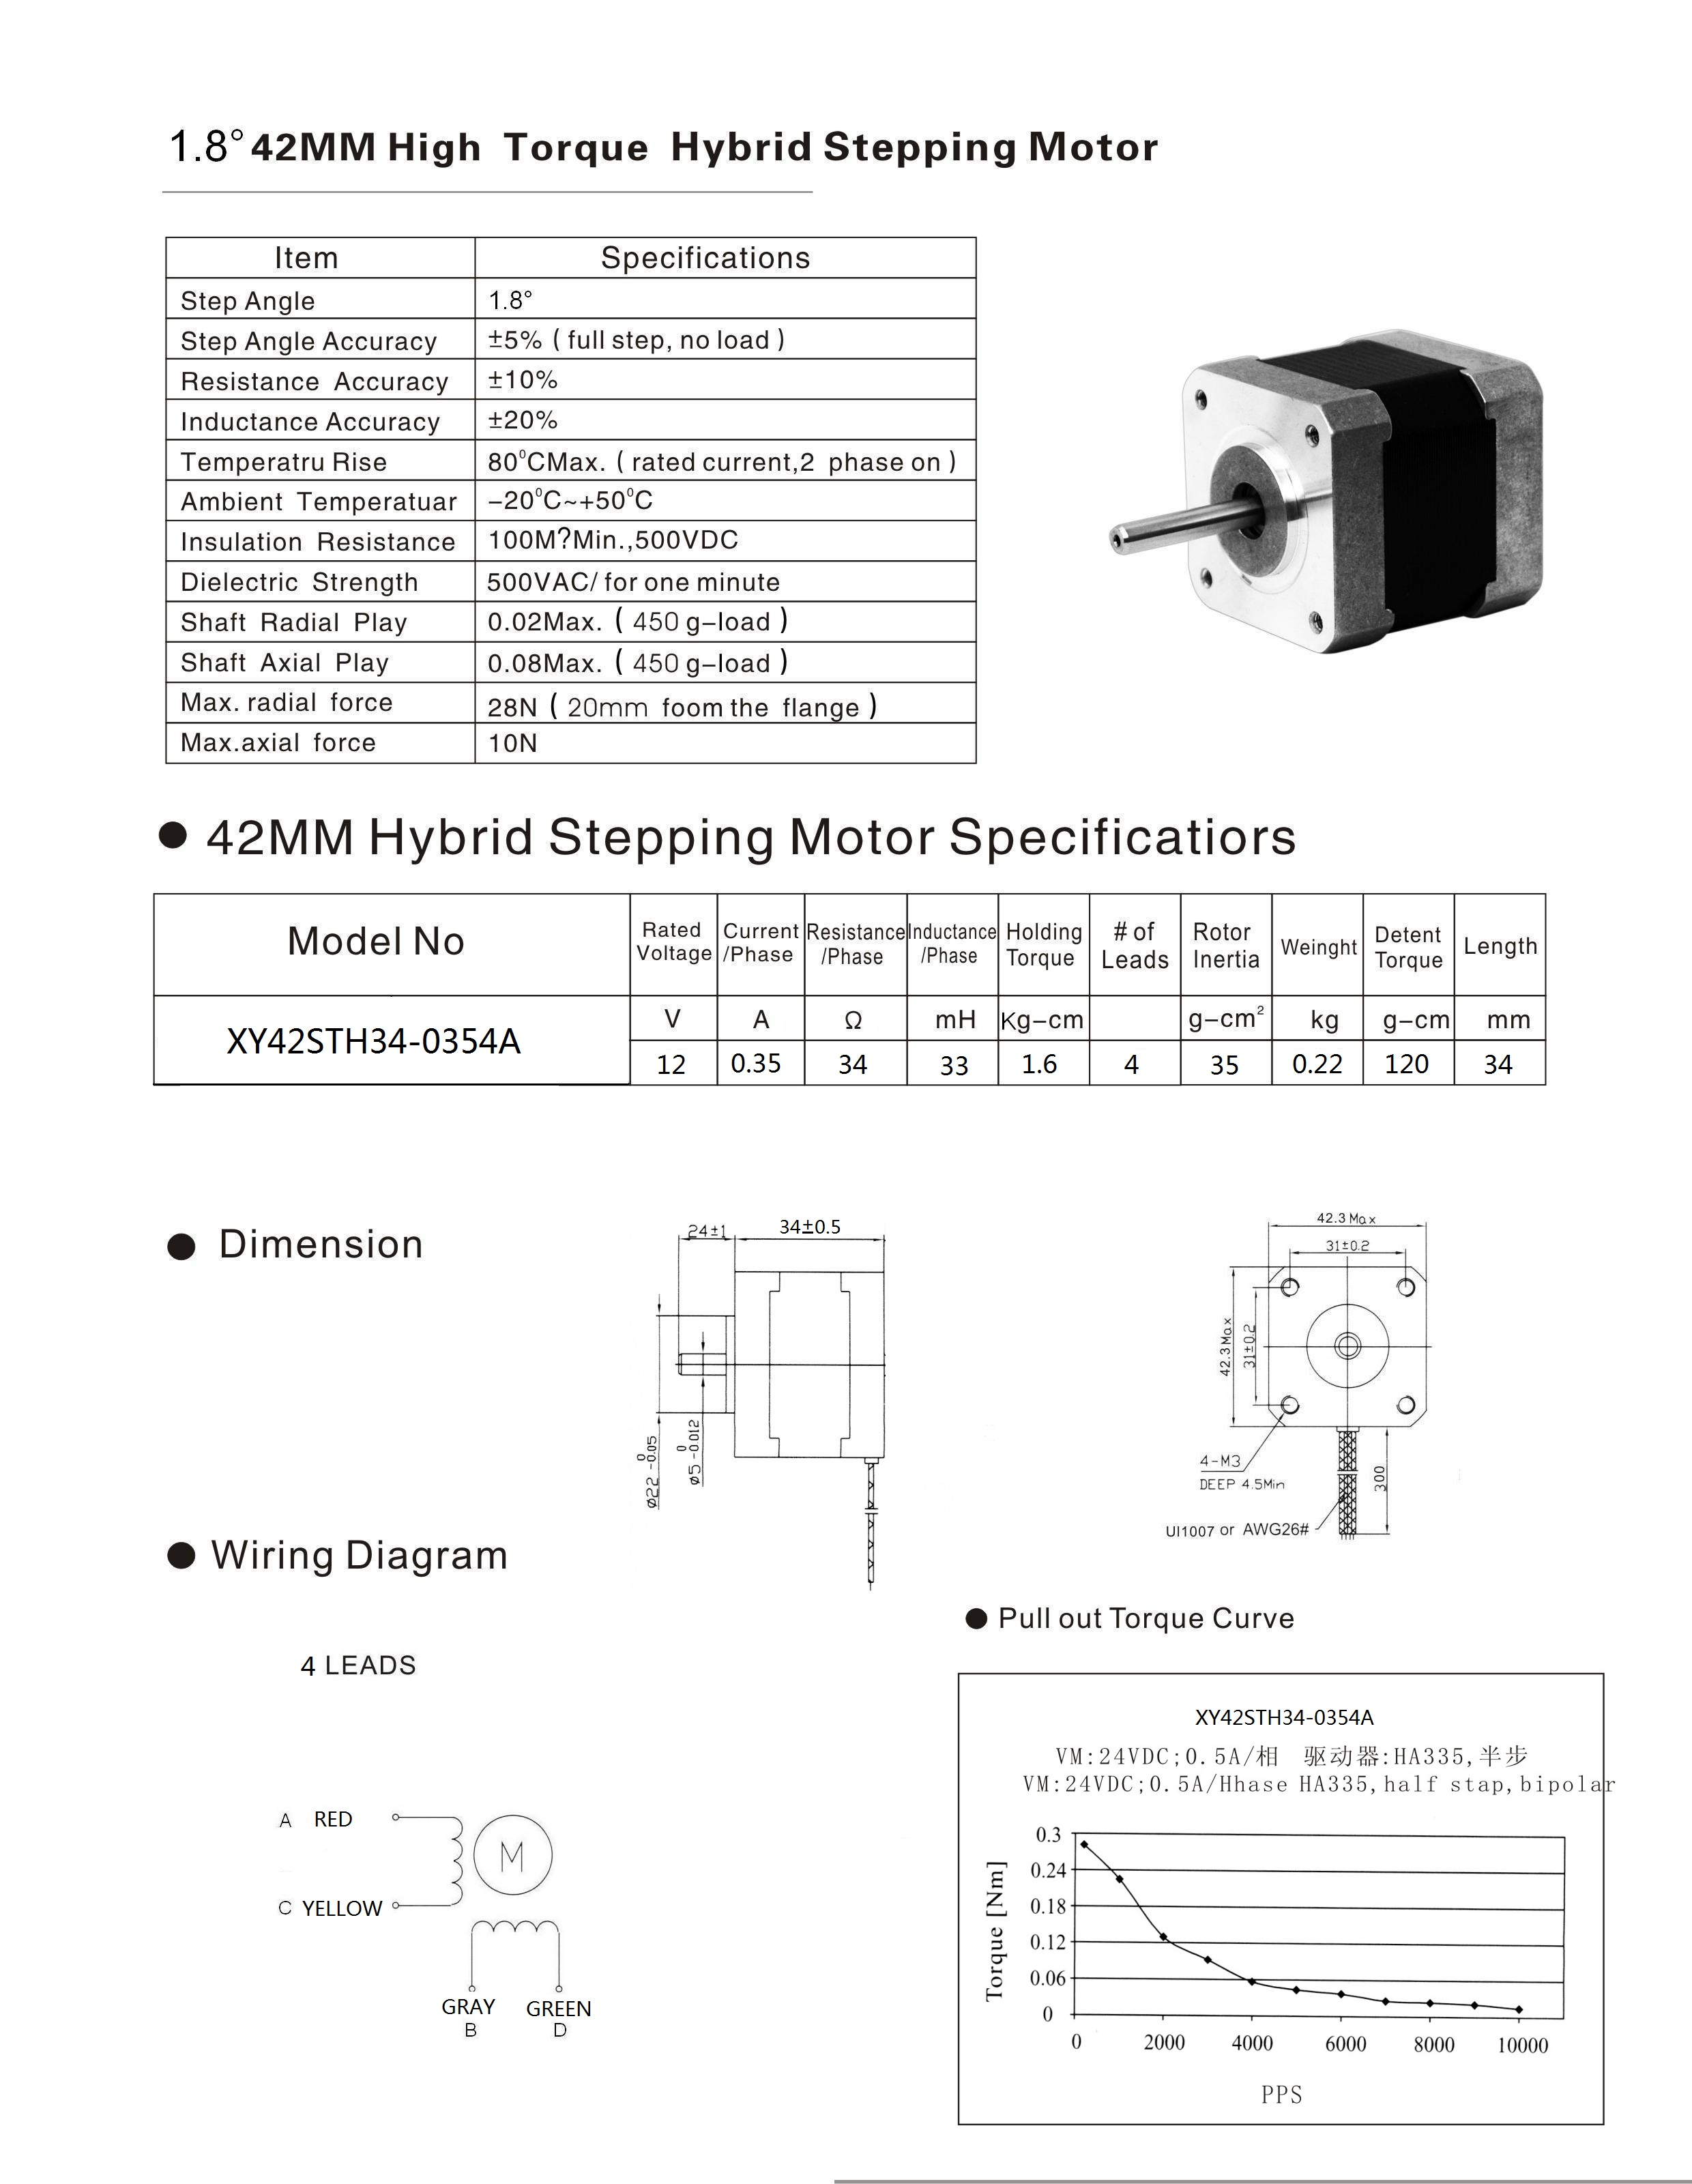 C140 A+datasheet stepper motor nema 17 size 200 steps rev, 12v 350ma id 324 nema 17 stepper motor wiring diagram at gsmportal.co